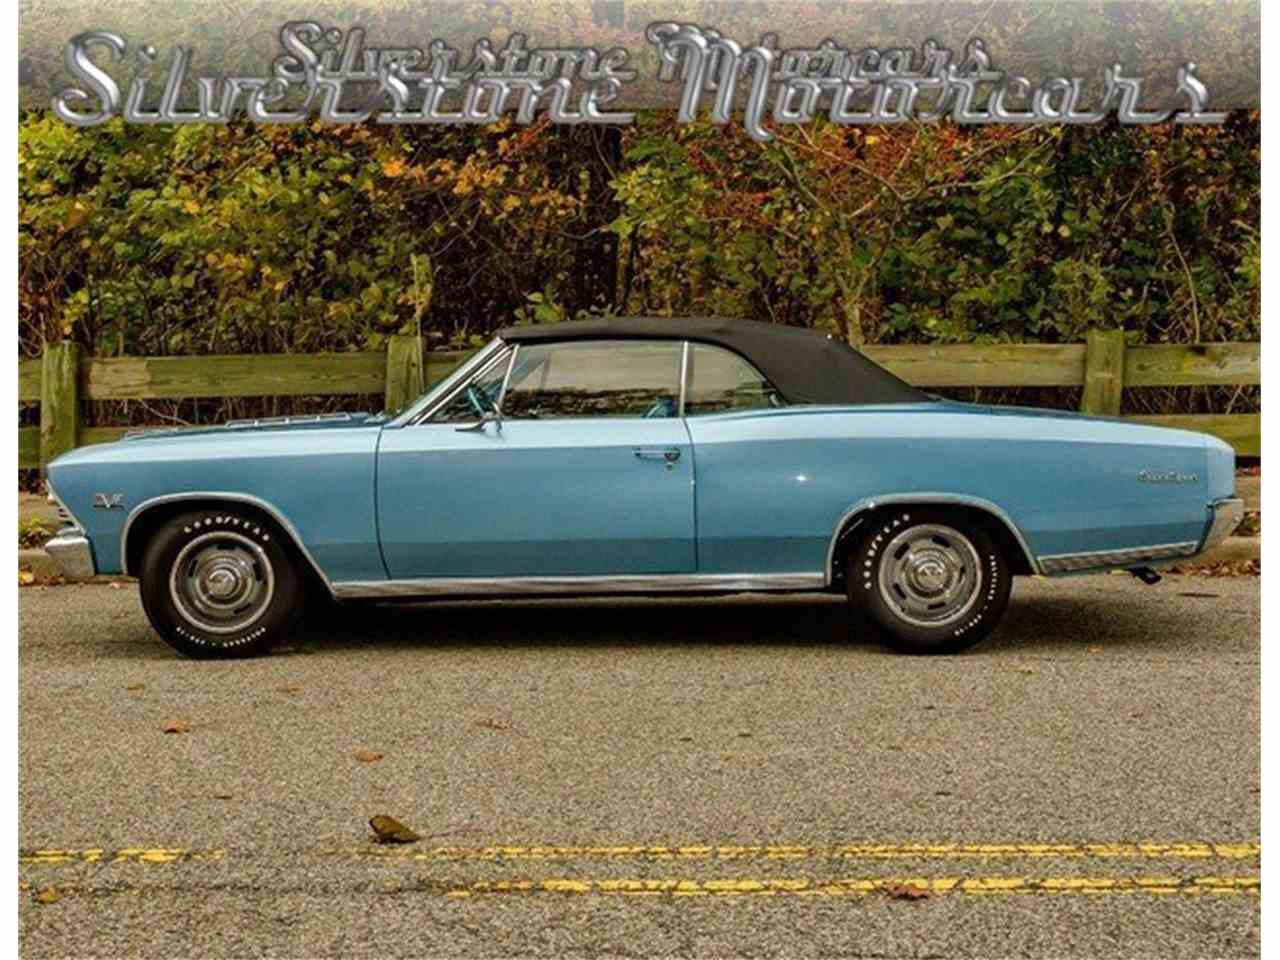 Large Picture of '66 Chevrolet Chevelle SS located in North Andover Massachusetts - $47,500.00 Offered by Silverstone Motorcars - LRTM